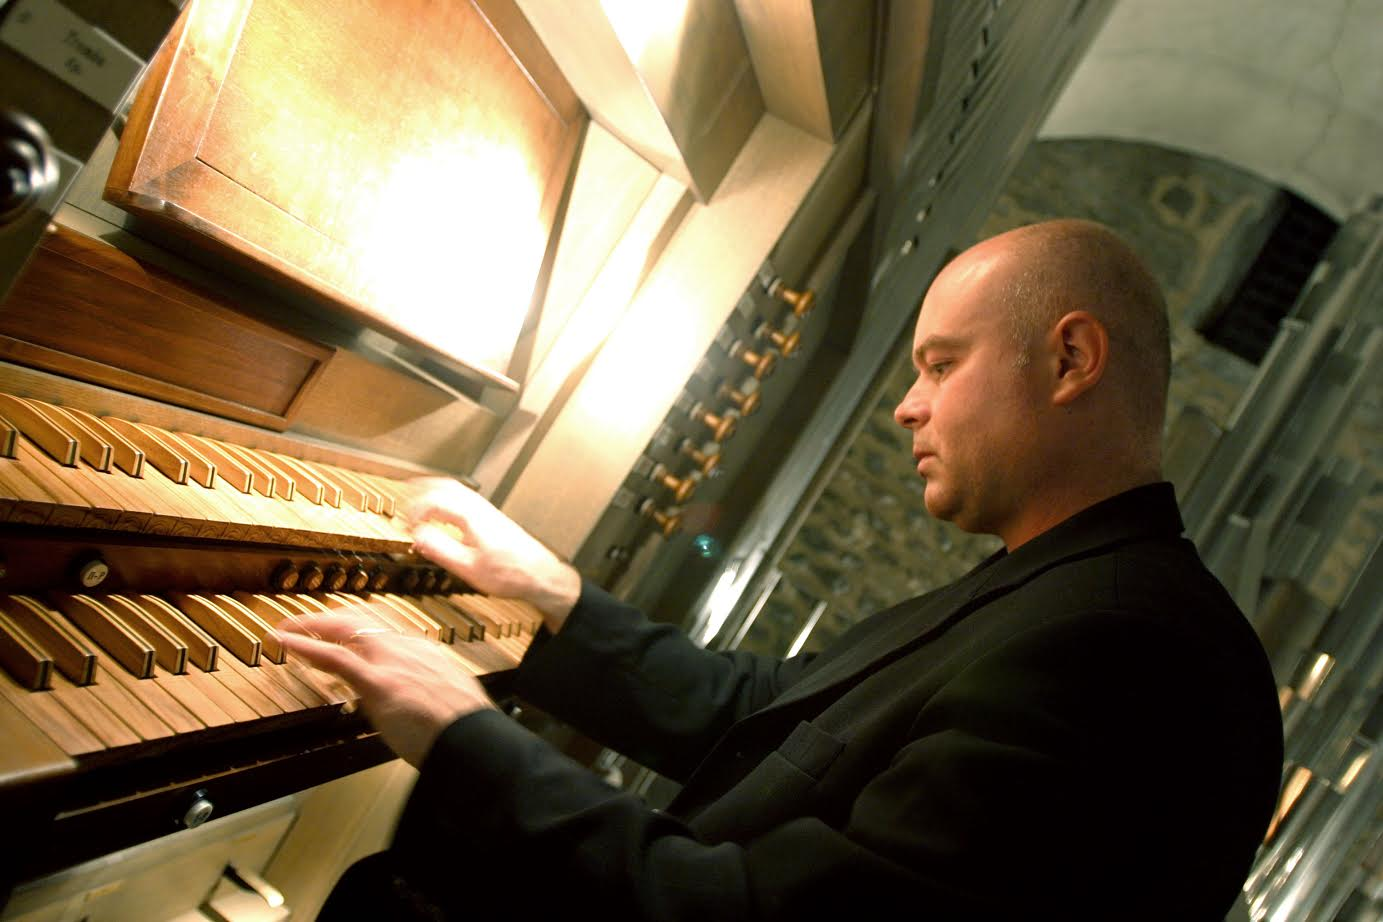 Paolo Bougeat a Cantantibus Organis